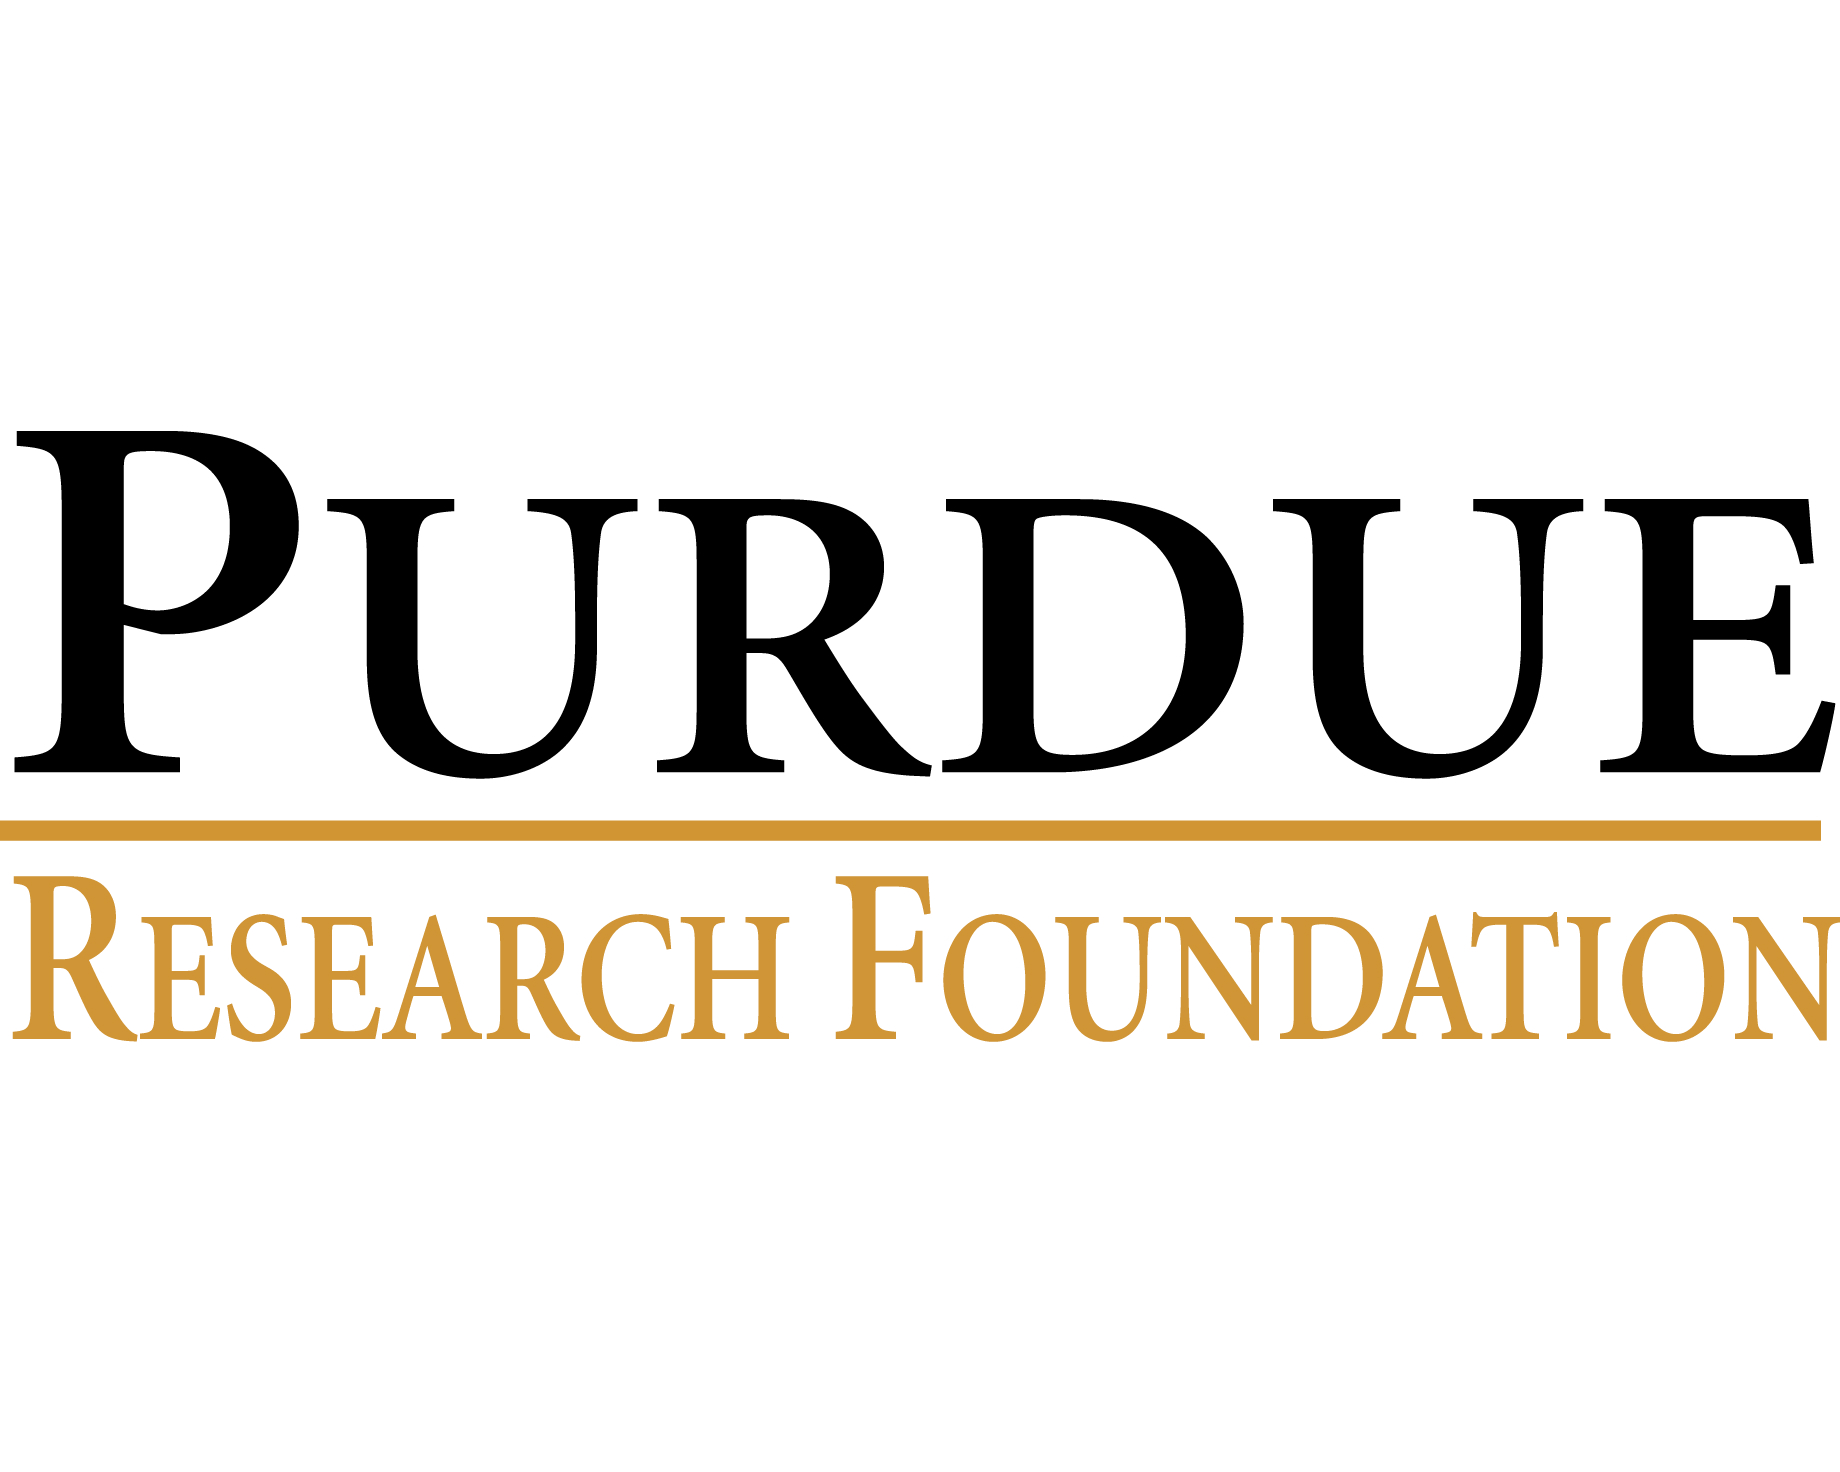 purdue_research_foundation.jpg